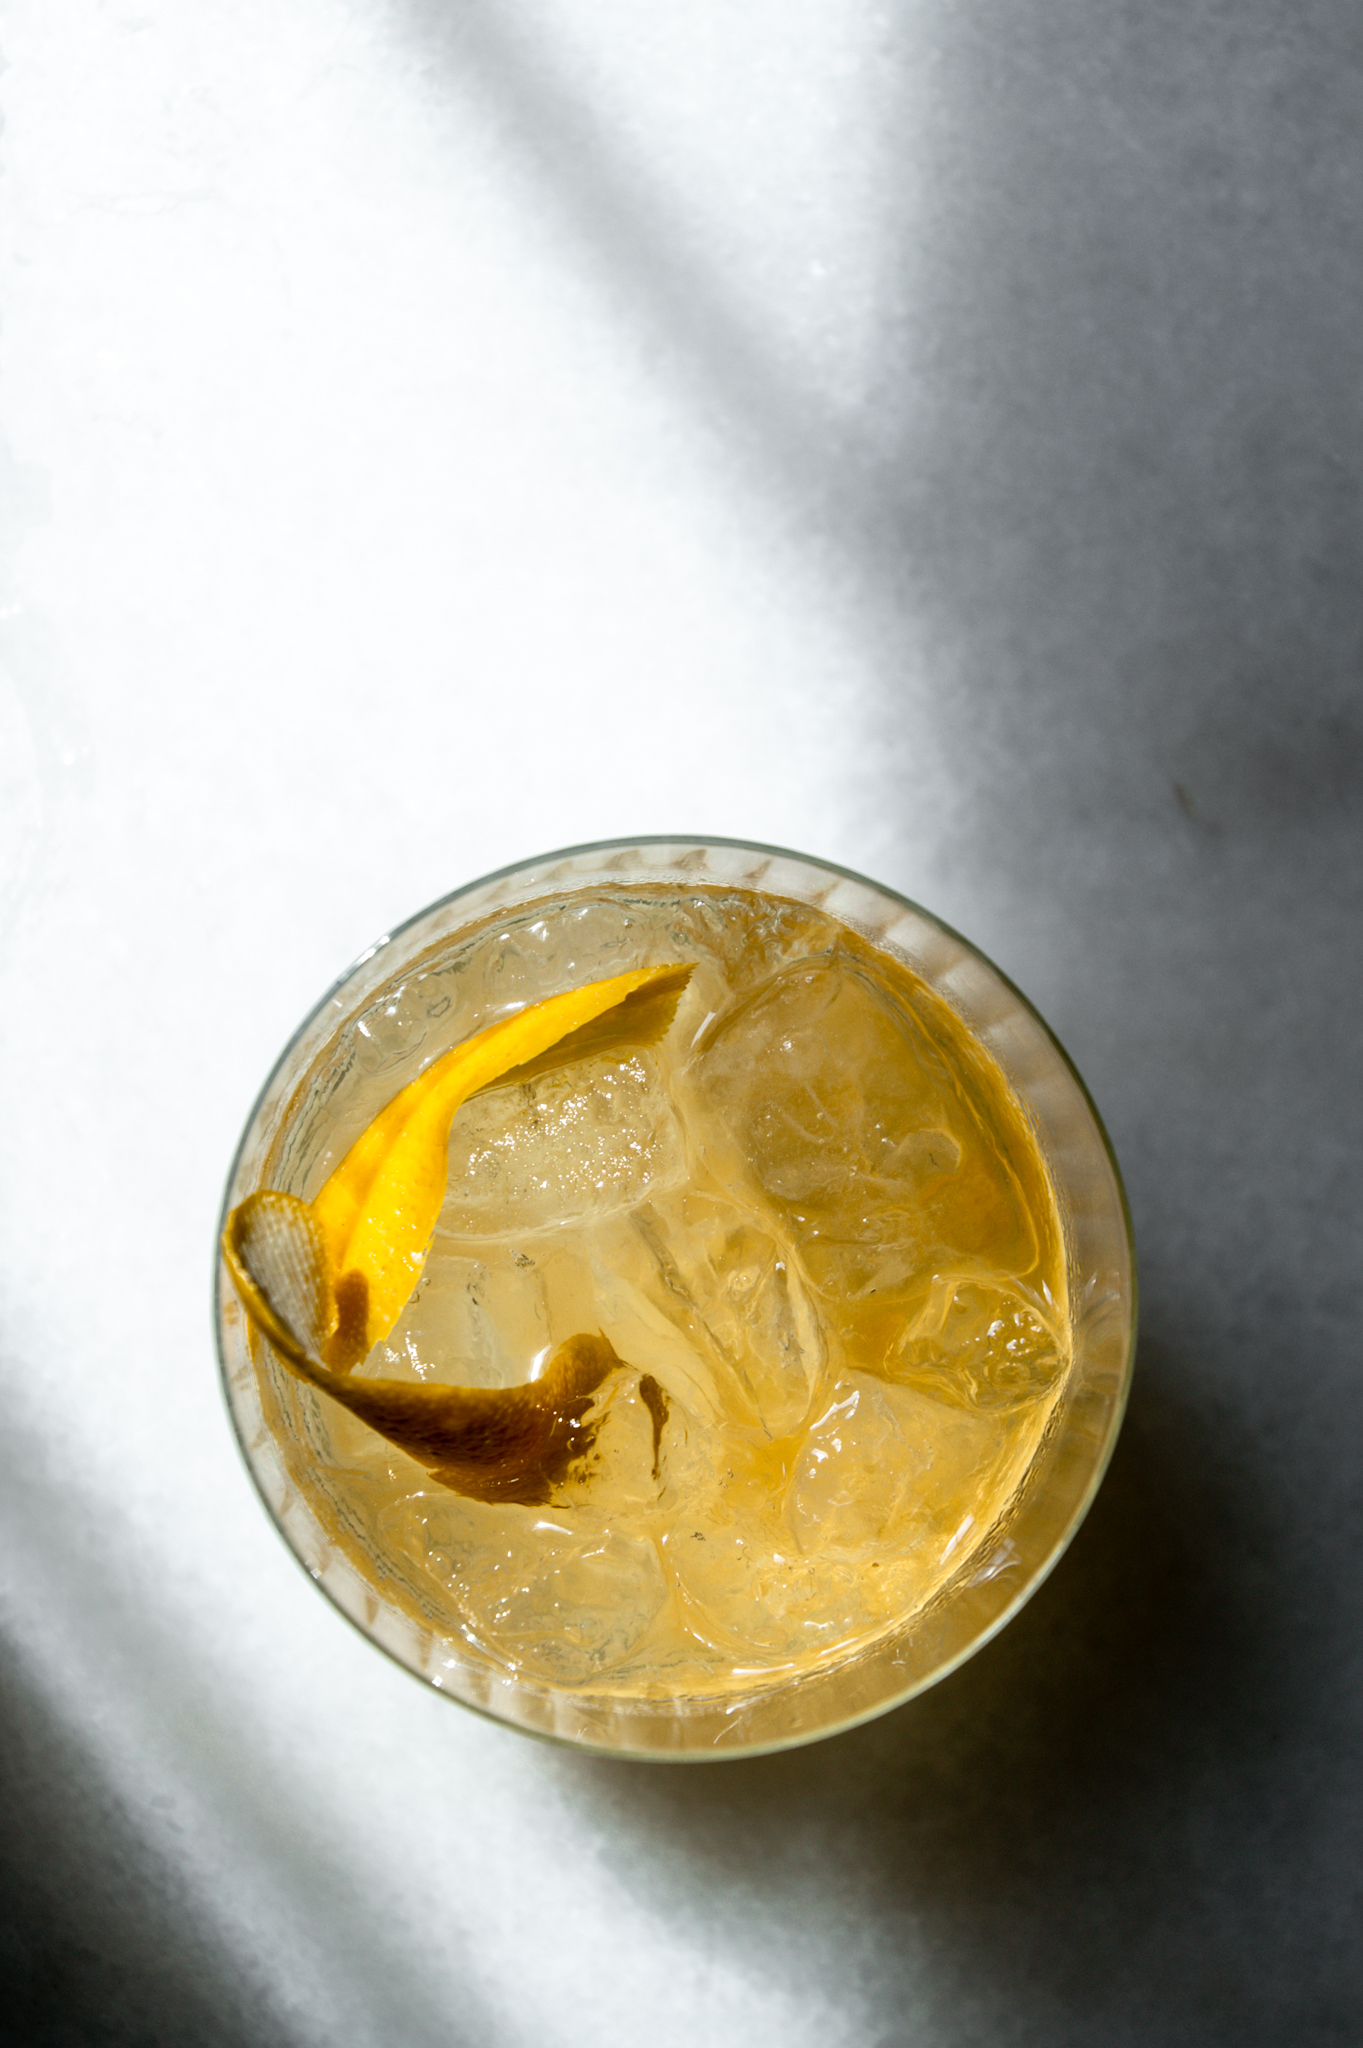 Elderflower whiskey sour on the rocks with a twist, made with St. Germain and homemade lemon syrup